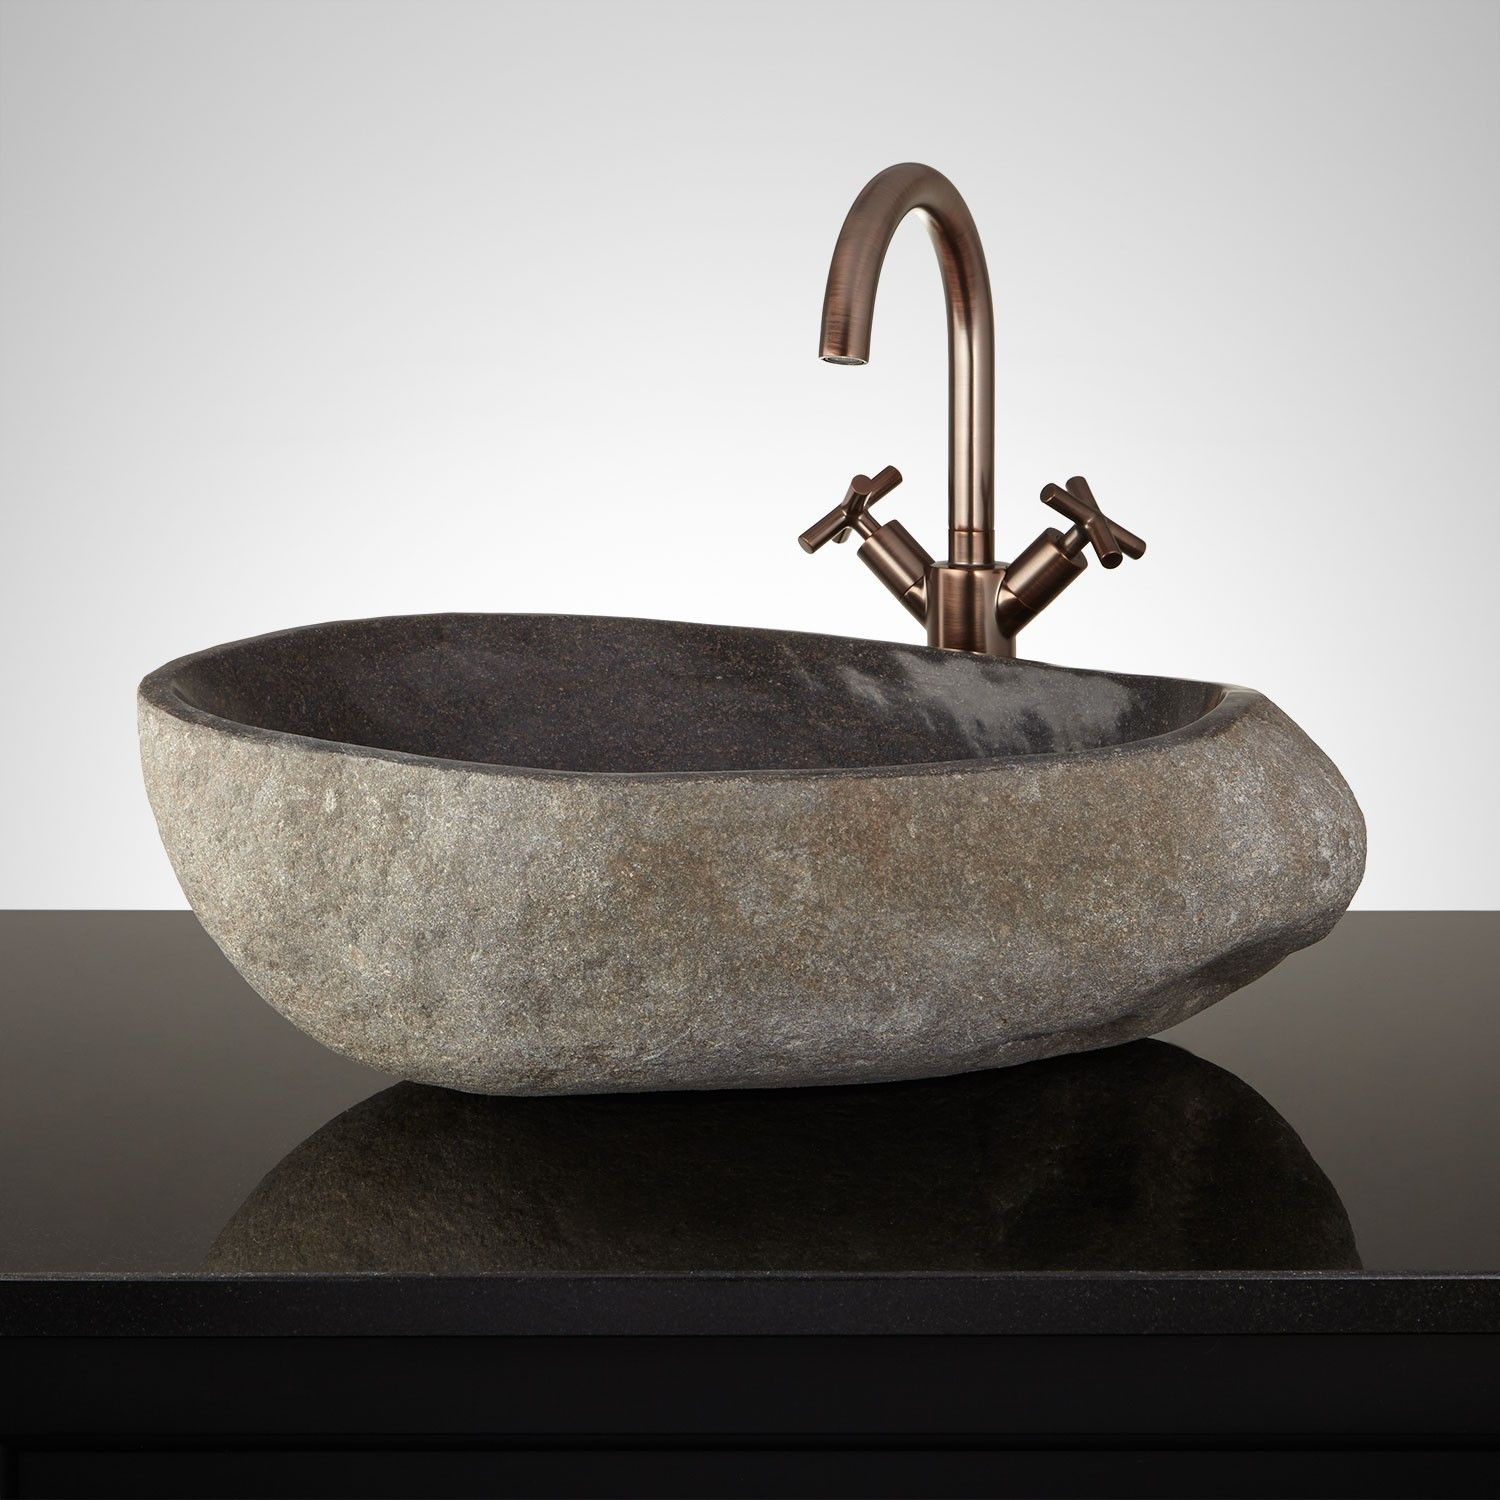 Among The Various Sinks You Can Choose For Your Bathroom A Vessel Sink Is Surely The Most Stylish And Innovative One Wi Stone Vessel Sinks Bathroom Sink Sink